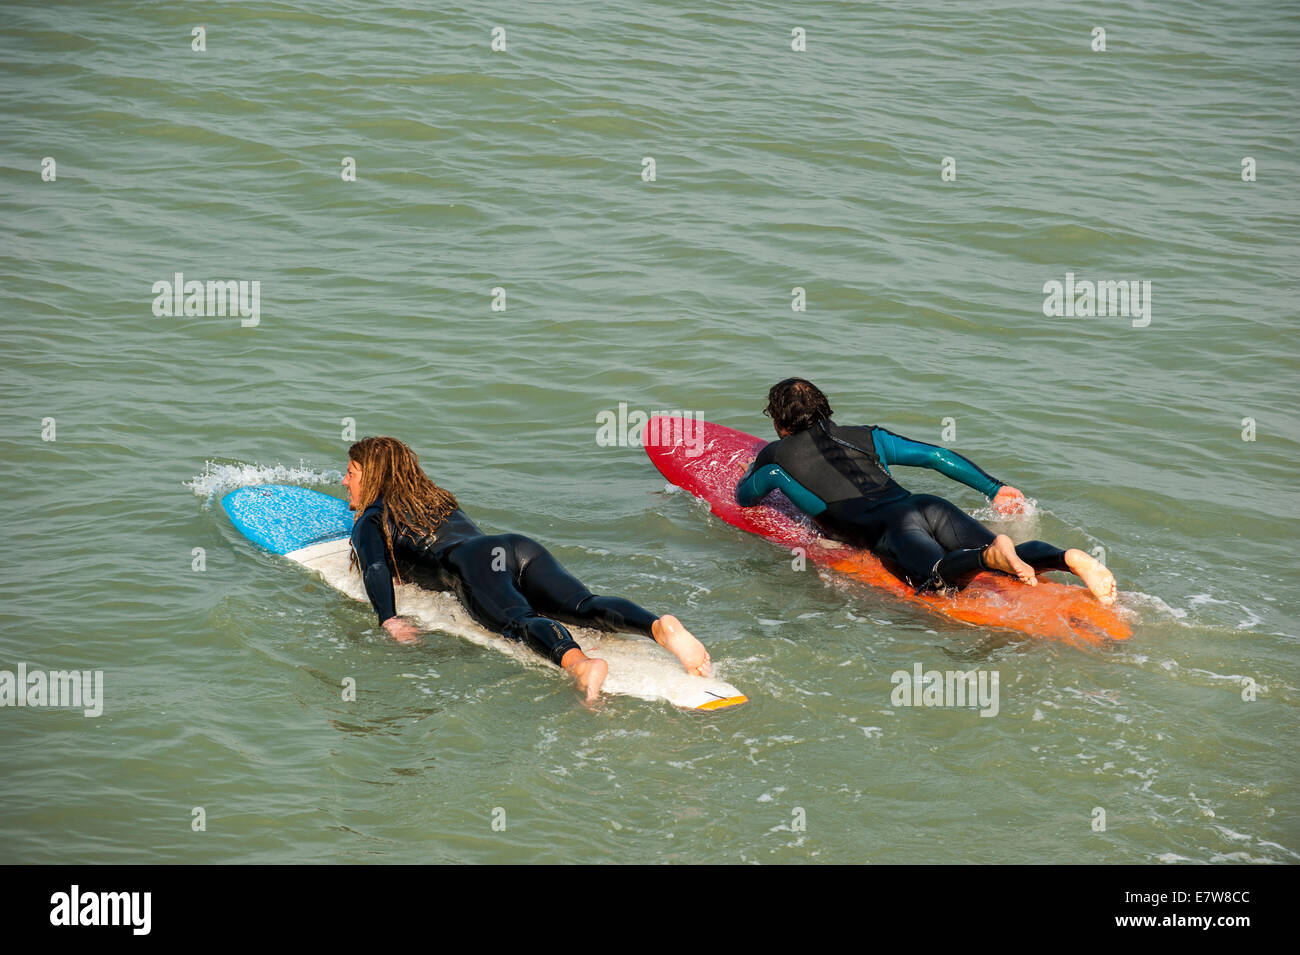 Two surfers in wetsuits laying flat on their surfboards in the sea, paddling out towards the waves - Stock Image